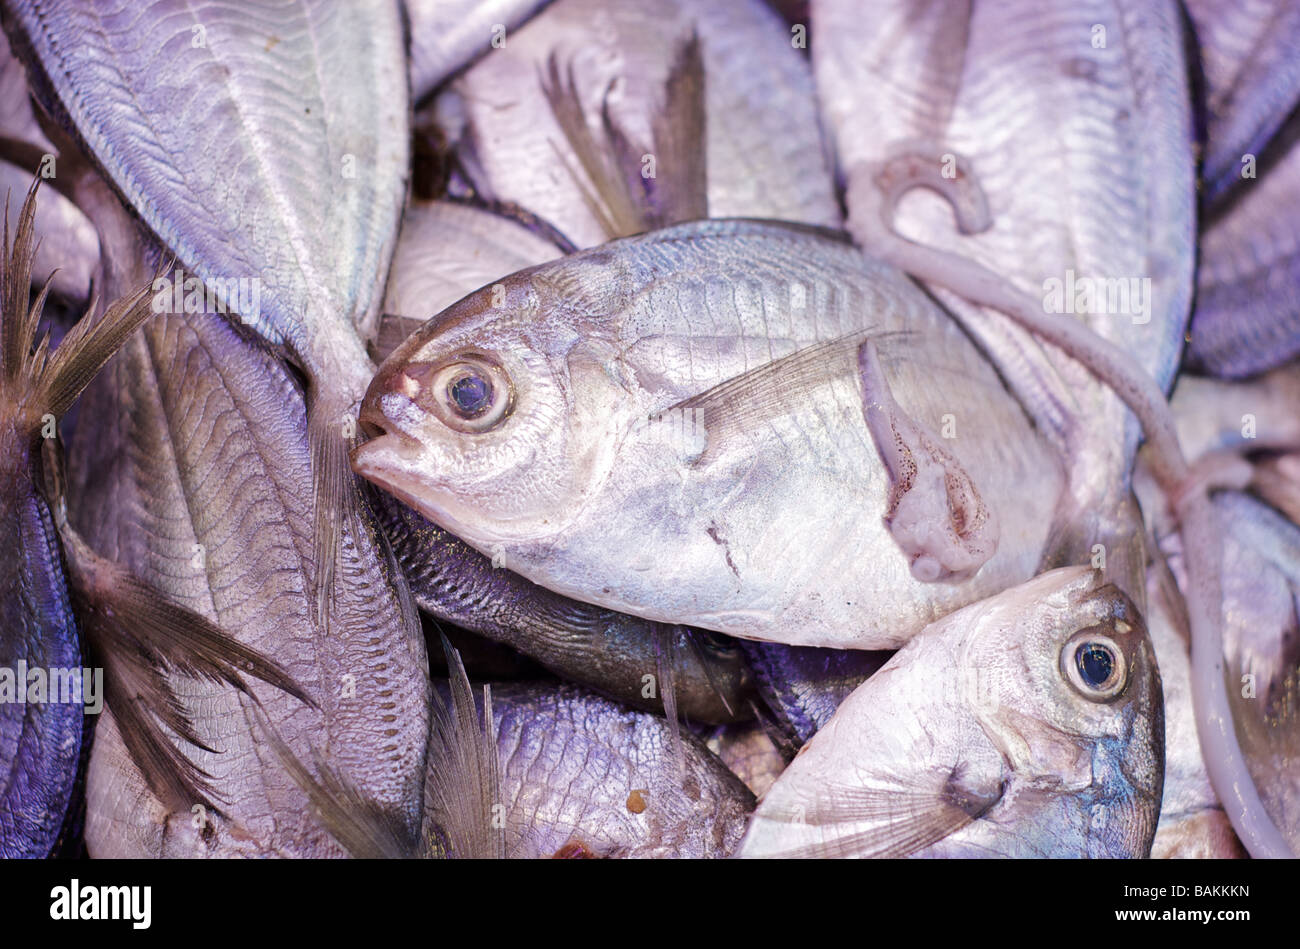 Closeup of Iced Pompano Fish on Display at a Seafood Market - Stock Image